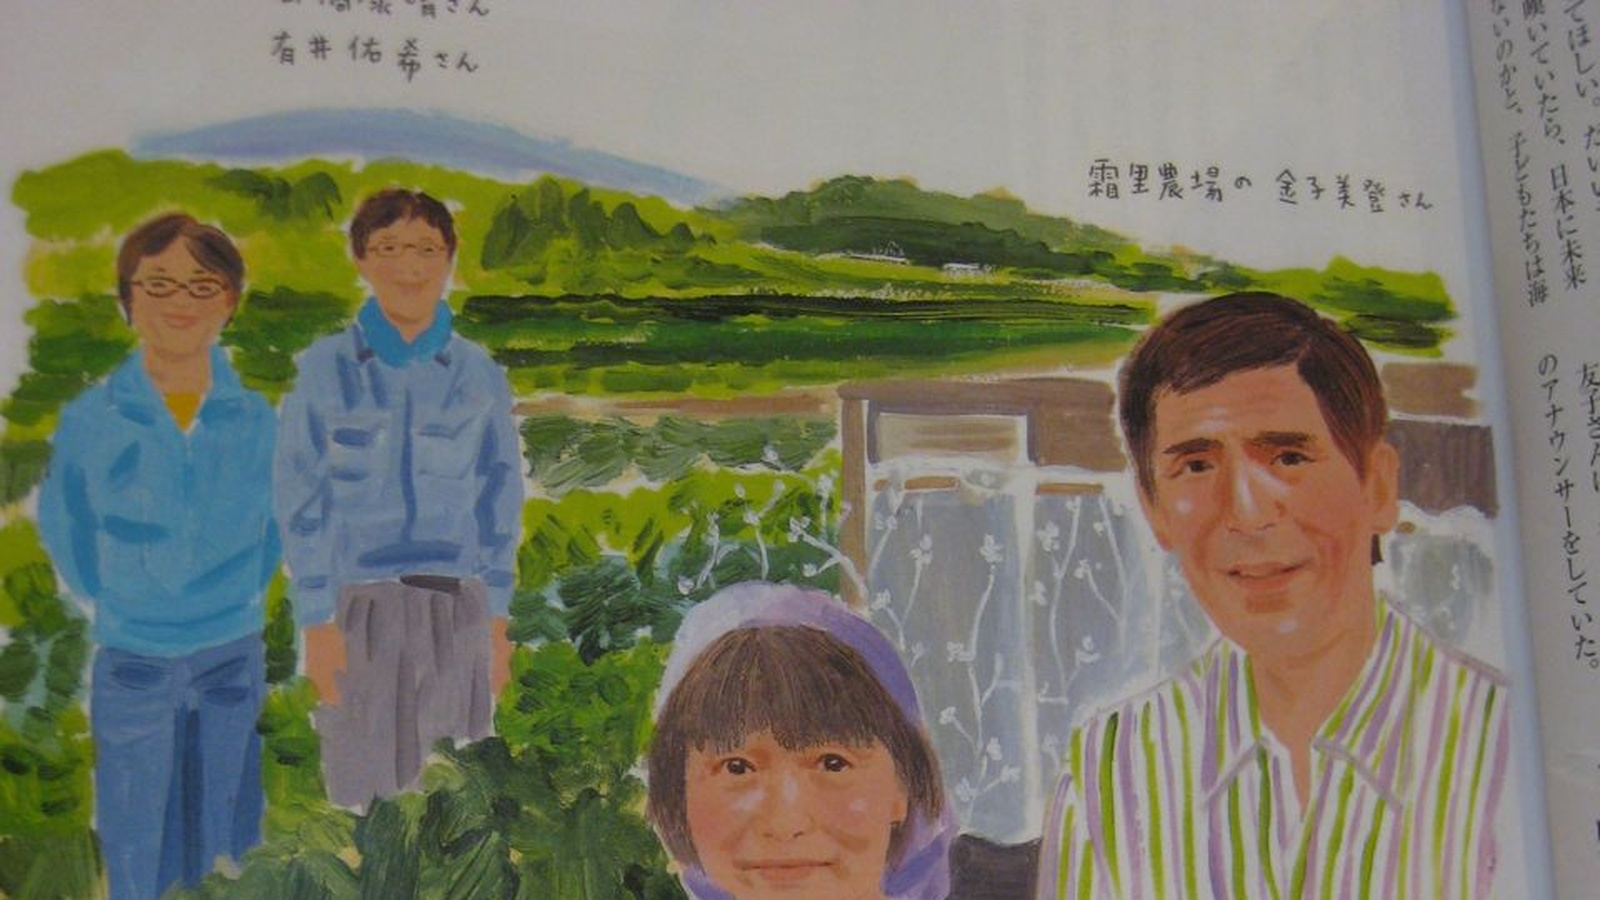 Interview with an Organic Farmer in Ogawa, Japan